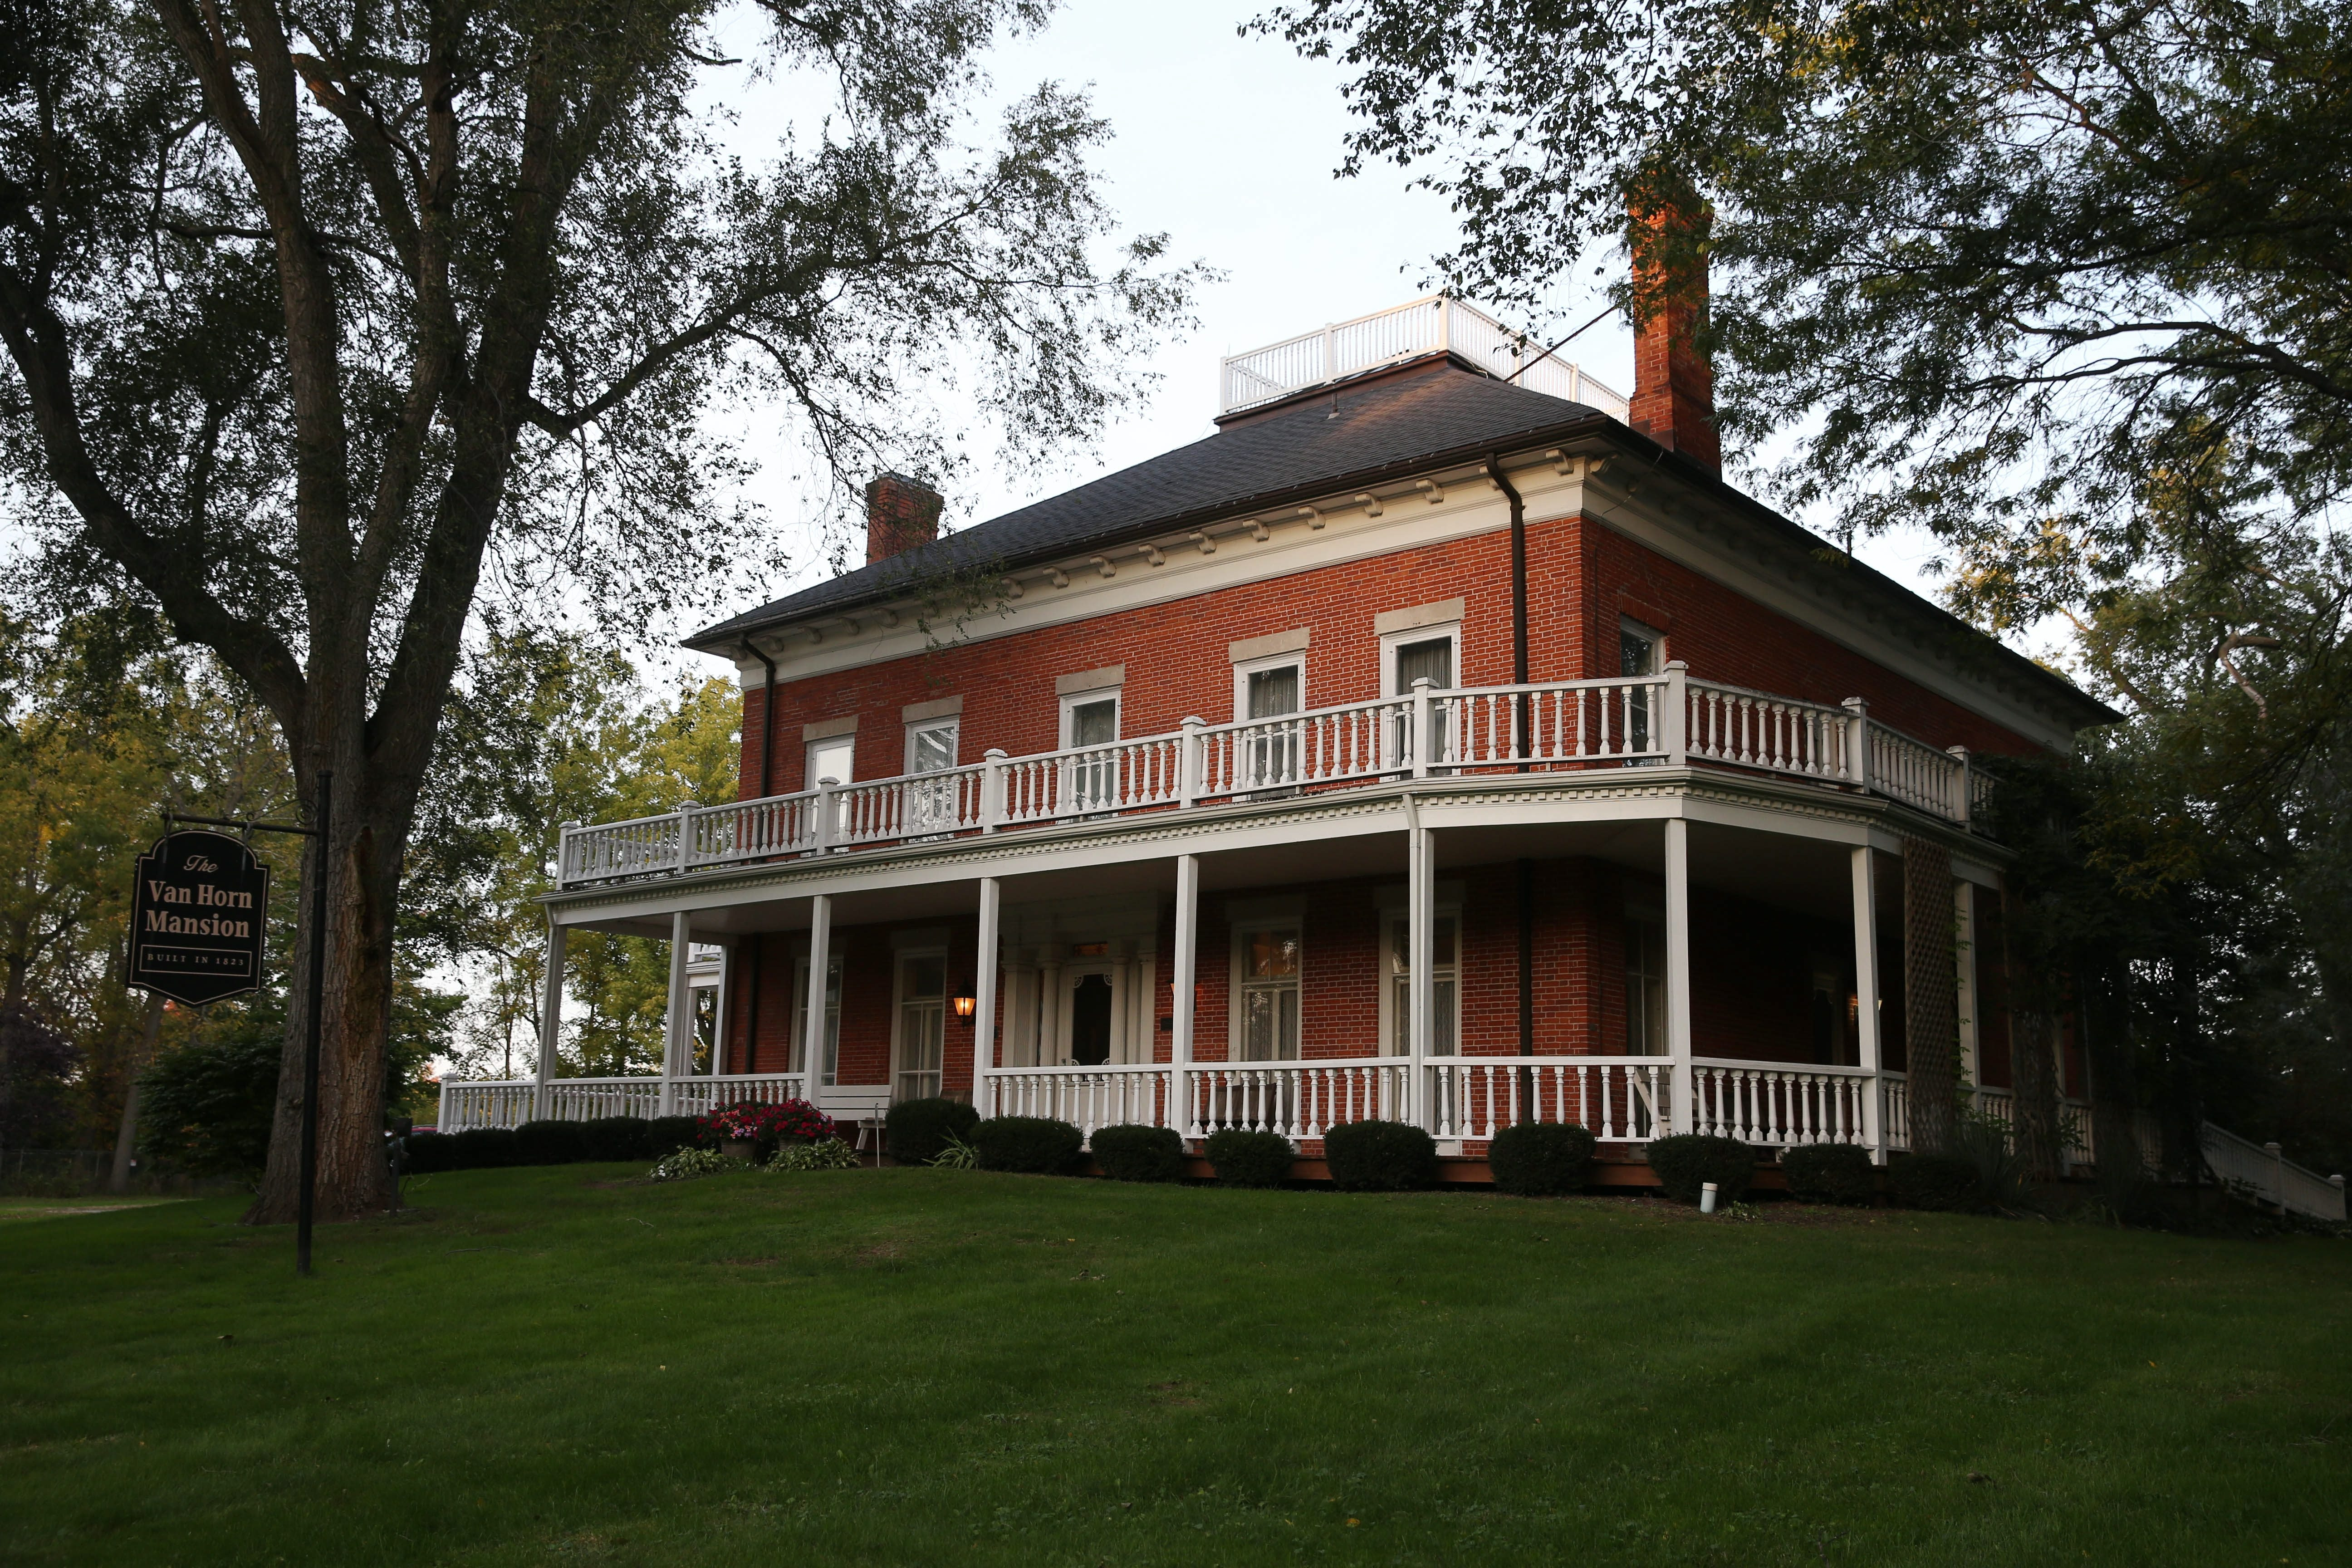 The Van Horn Mansion in Burt, which is on the National Register of Historic Places, has weekend candlelight tours throughout October. The Victorian house is said to be haunted.